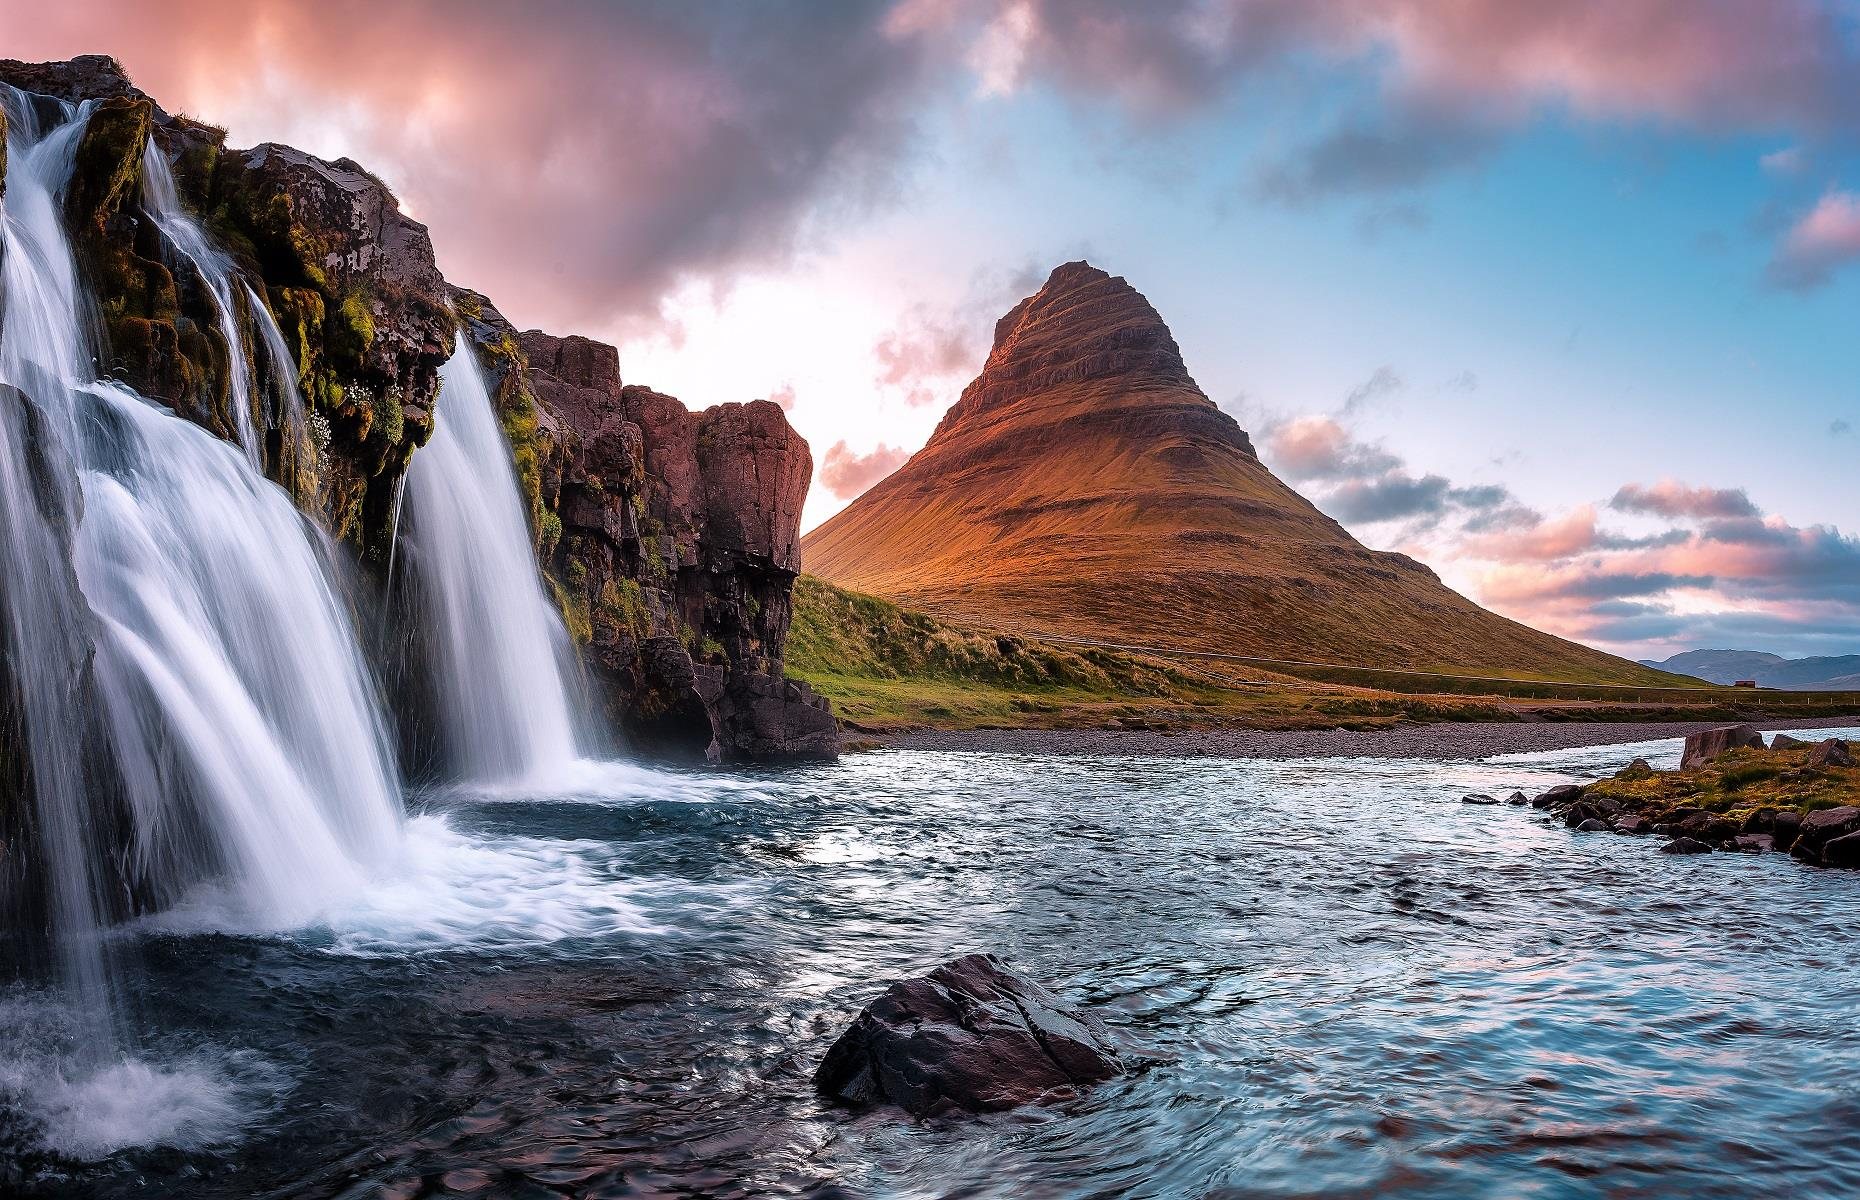 Slide 3 of 59: We've all heard of Everest and Fuji, and while these peaks are mesmerizing in their own ways, Kirkjufell in Iceland is altogether more ethereal. The 1,519-foot (463m) mountain can be found on the island's western coastline, an area defined by crystalline fjords, geothermal pools and dynamic waterfalls. It's the most photographed peak in all of Iceland and was also used as Arrow Head Mountain in the TV series Game of Thrones.